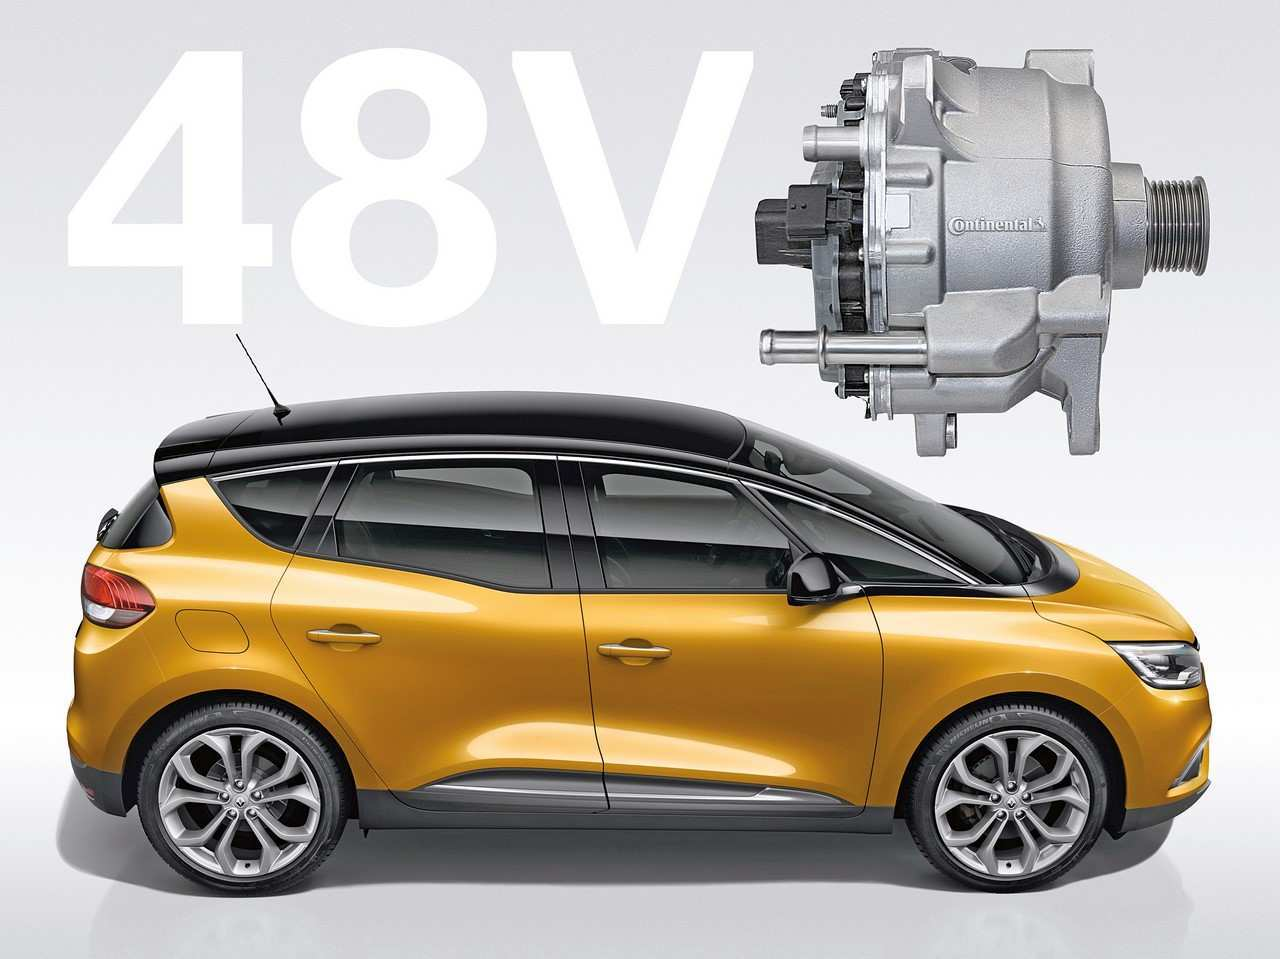 60 Best Review Renault Scenic 2019 Rumors by Renault Scenic 2019